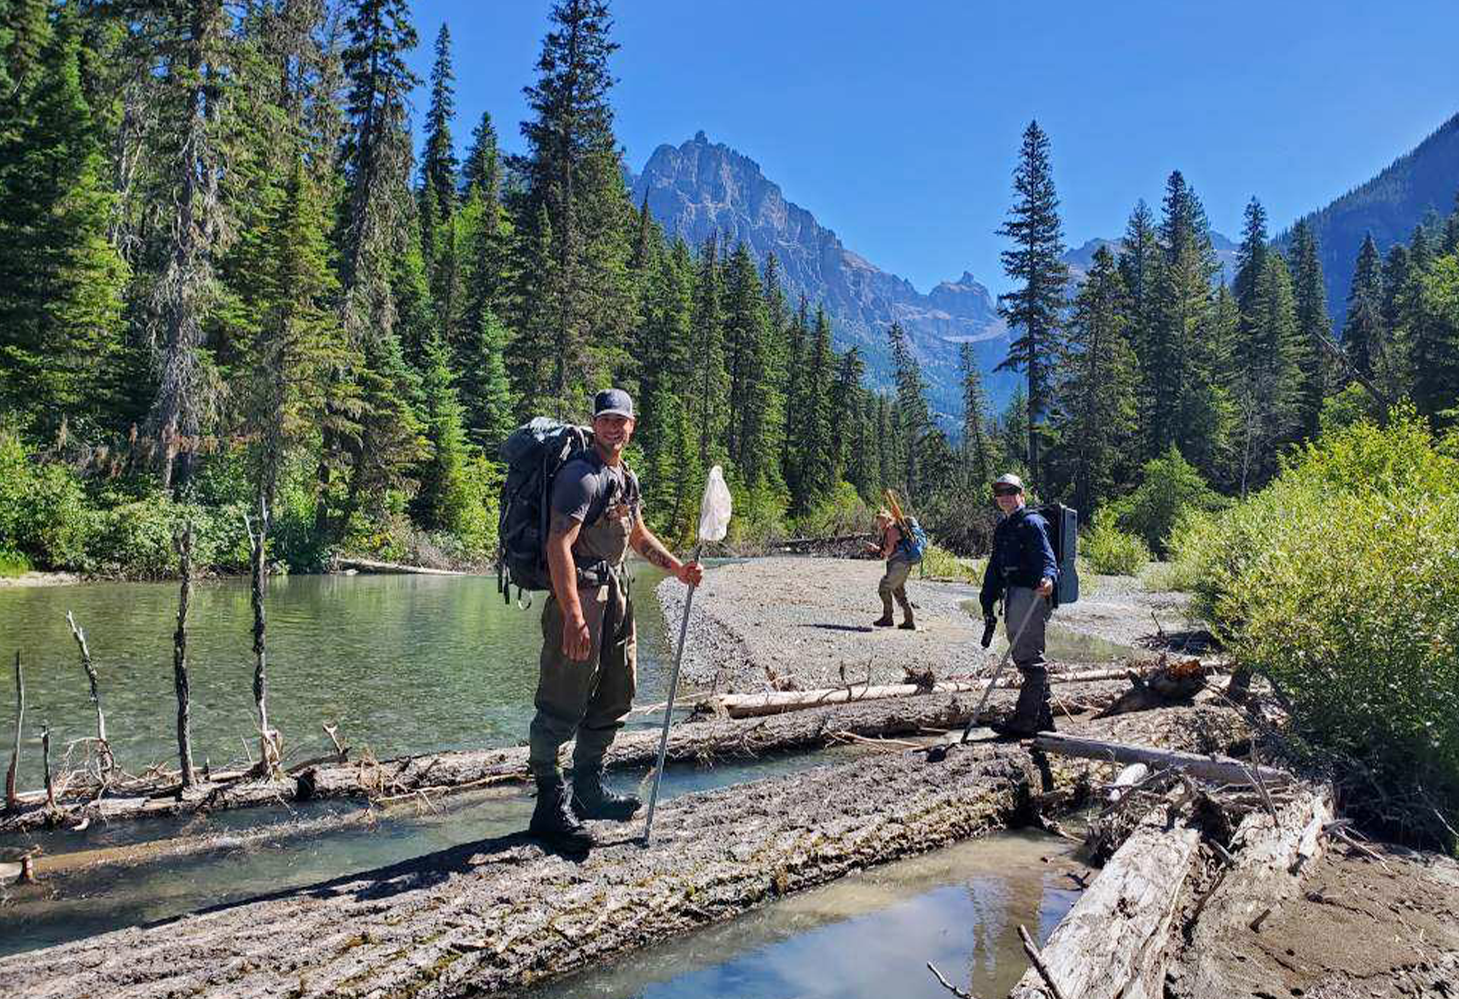 A team of scientists stand along the shore of a river in mountainous backcountry